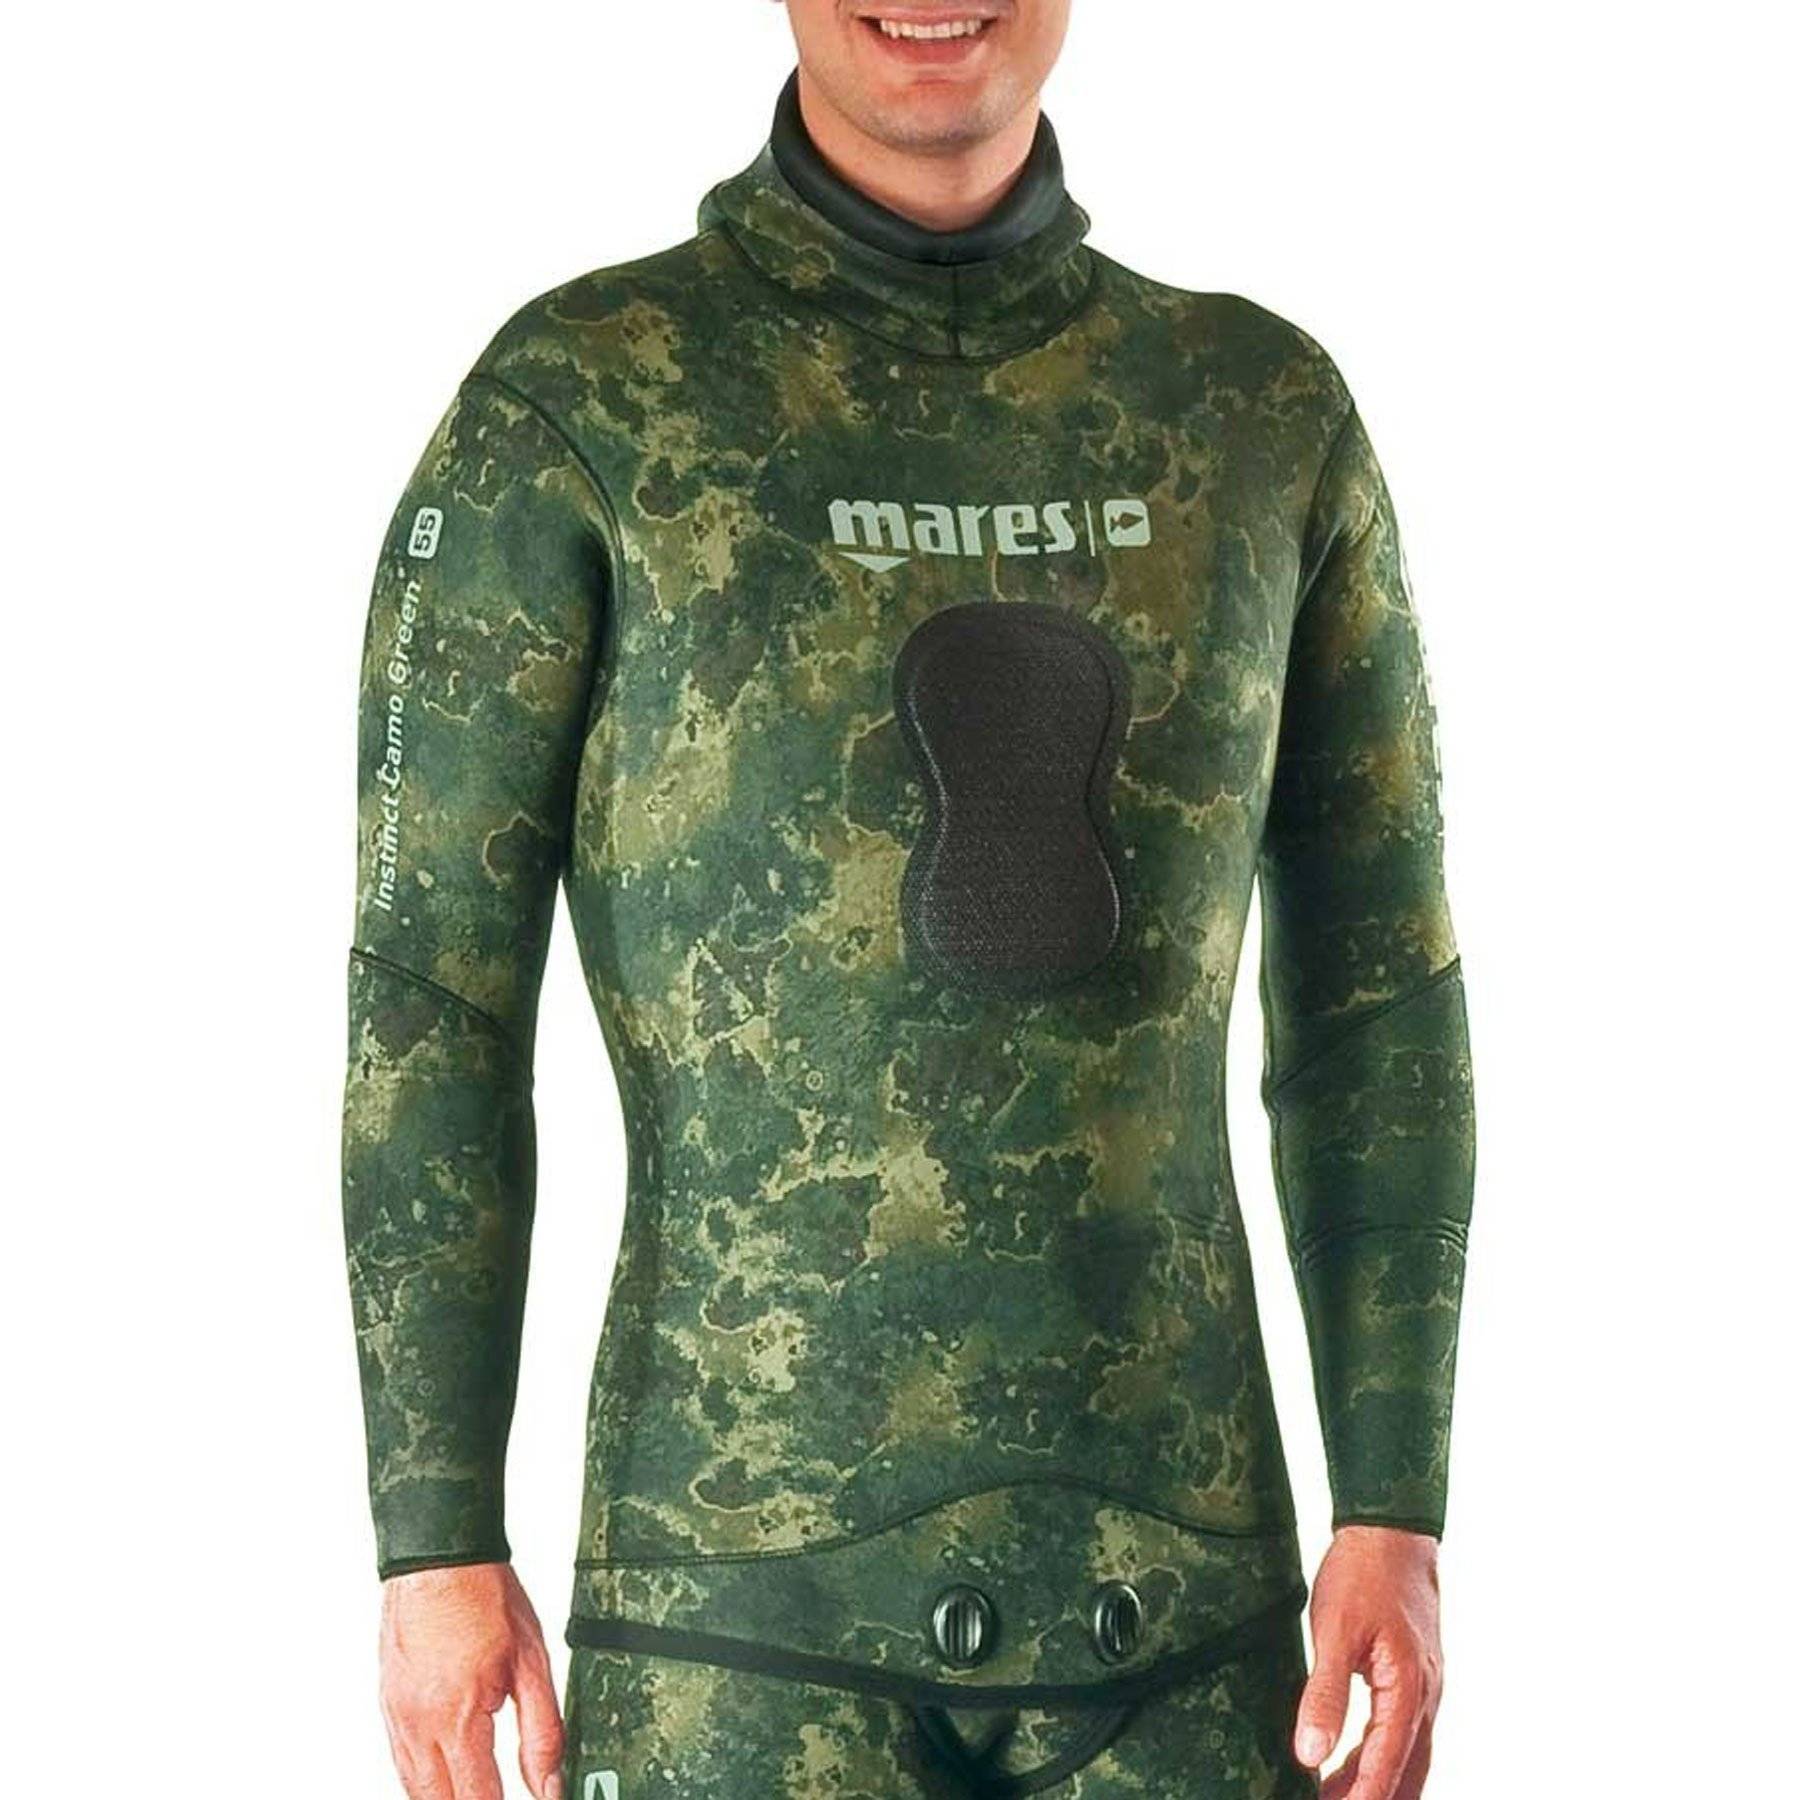 Mares Pure Instinct 5mm Jacket, Green Camo, S2 Small by Mares